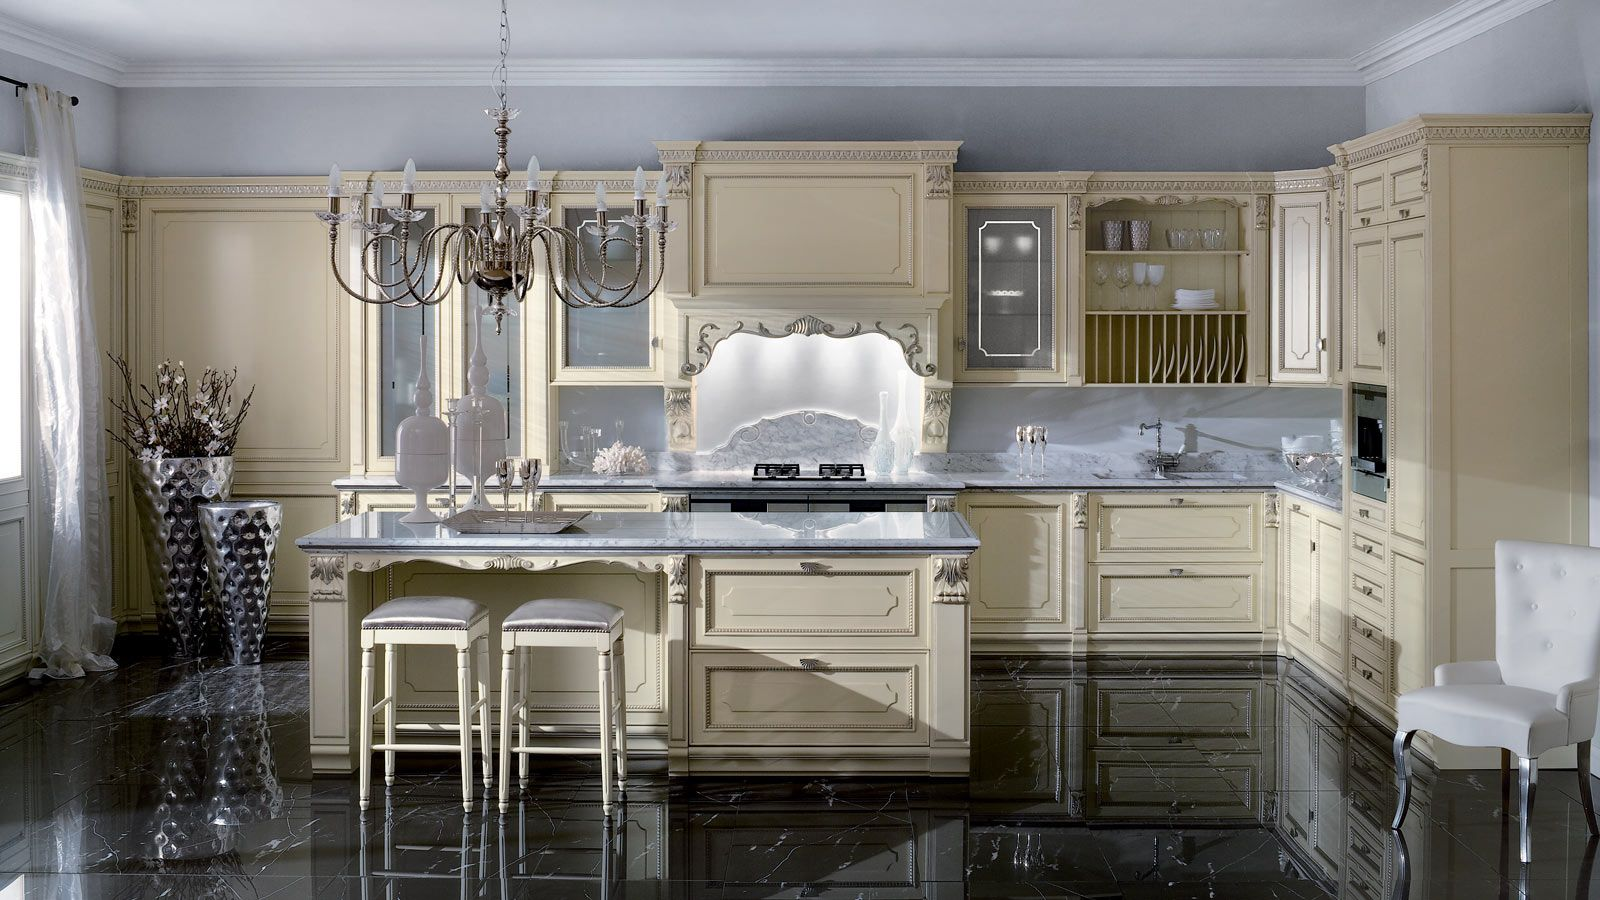 Kitchen Designs Extraordinary Classic Royal Kitchen With Island